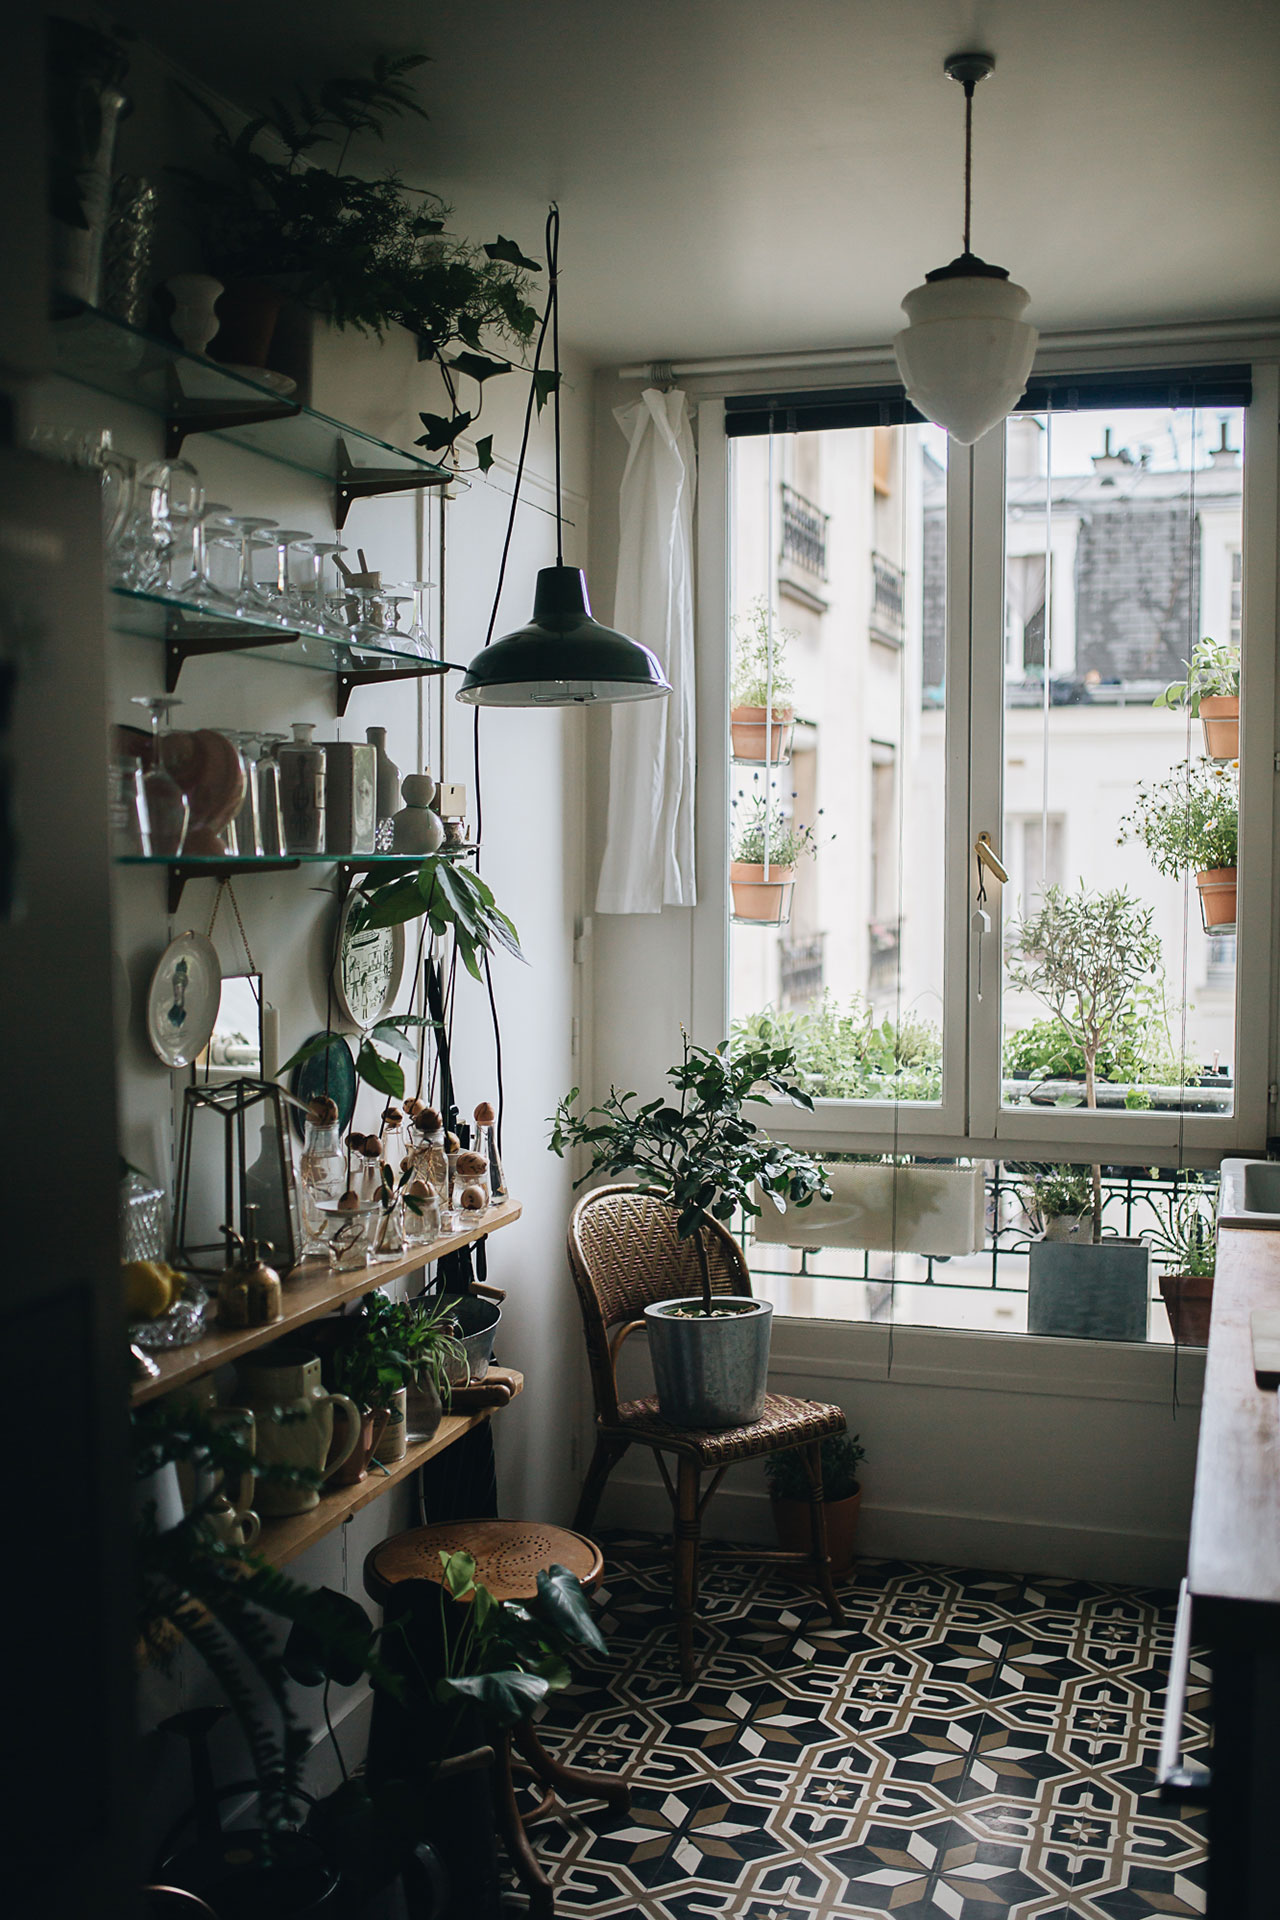 PLANT TRIBE LIVING HAPPILY EVER AFTER WITH PLANTSBy Igor Josifovic & Judith de Graaff Photo: The home of Rebecca Breach In Paris.Photography by Jules Villbrandt for Urban Jungle Bloggers.